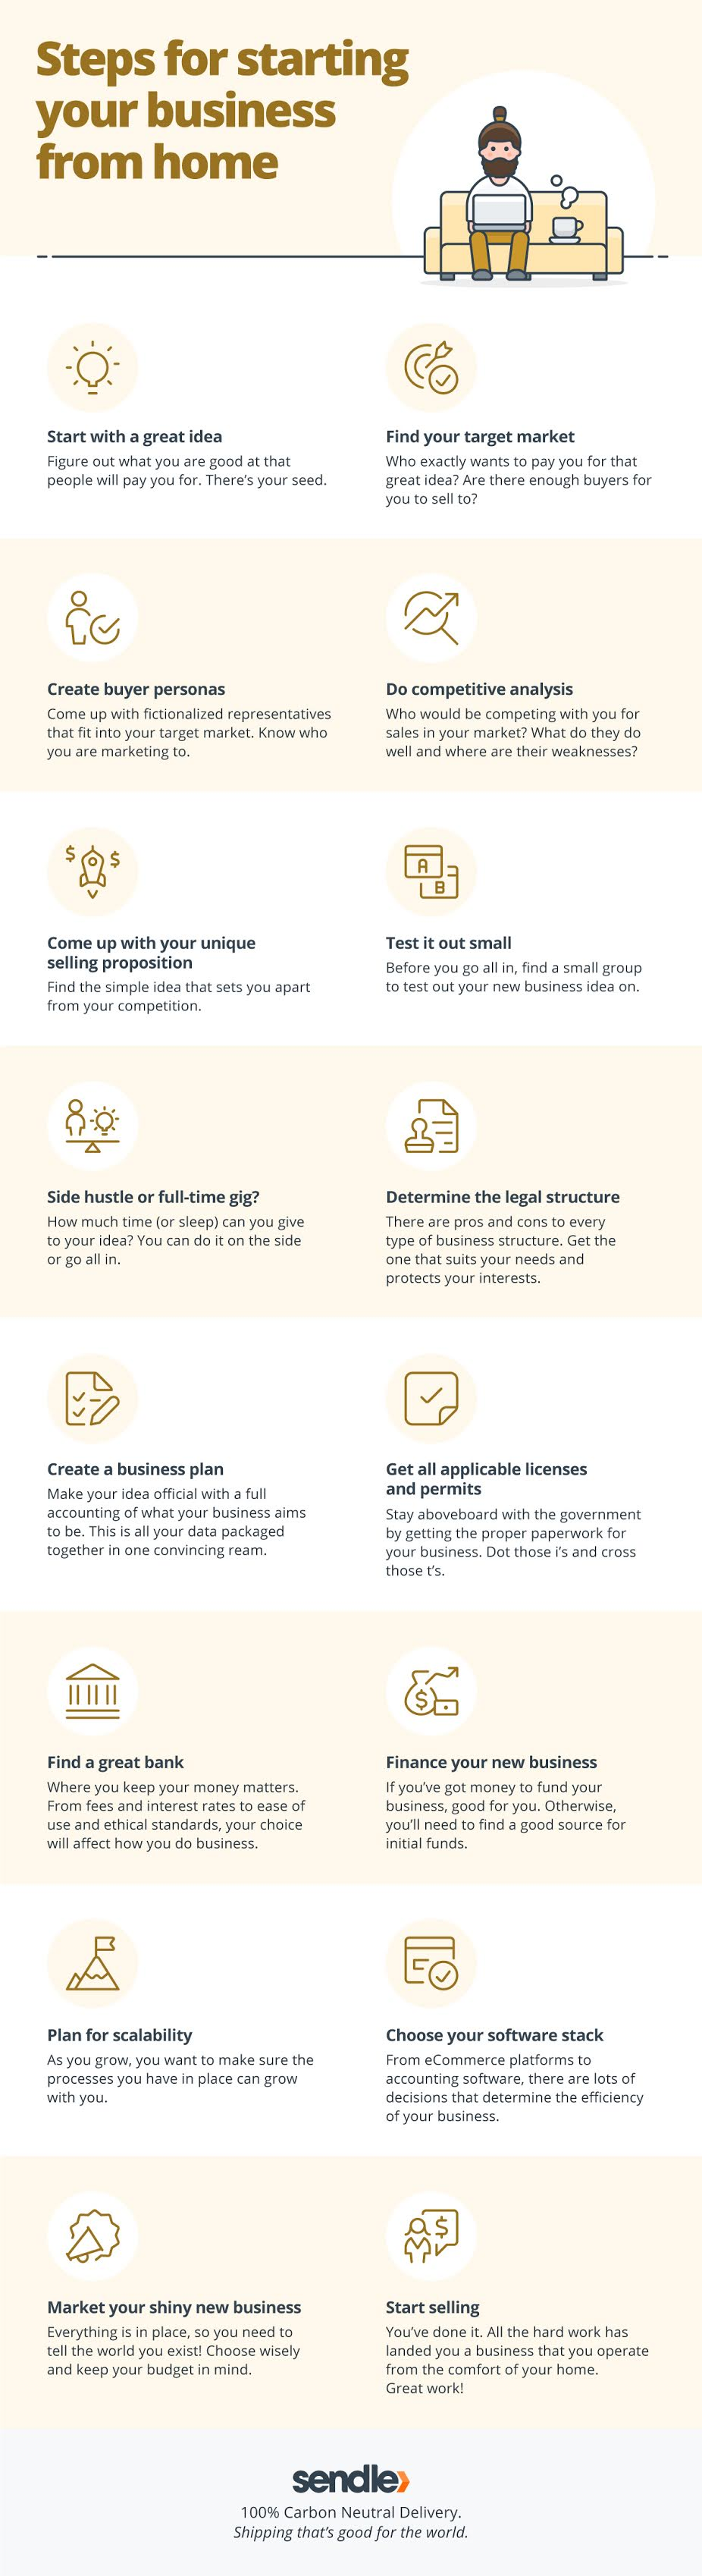 Steps To Starting Your Home Business #infographic